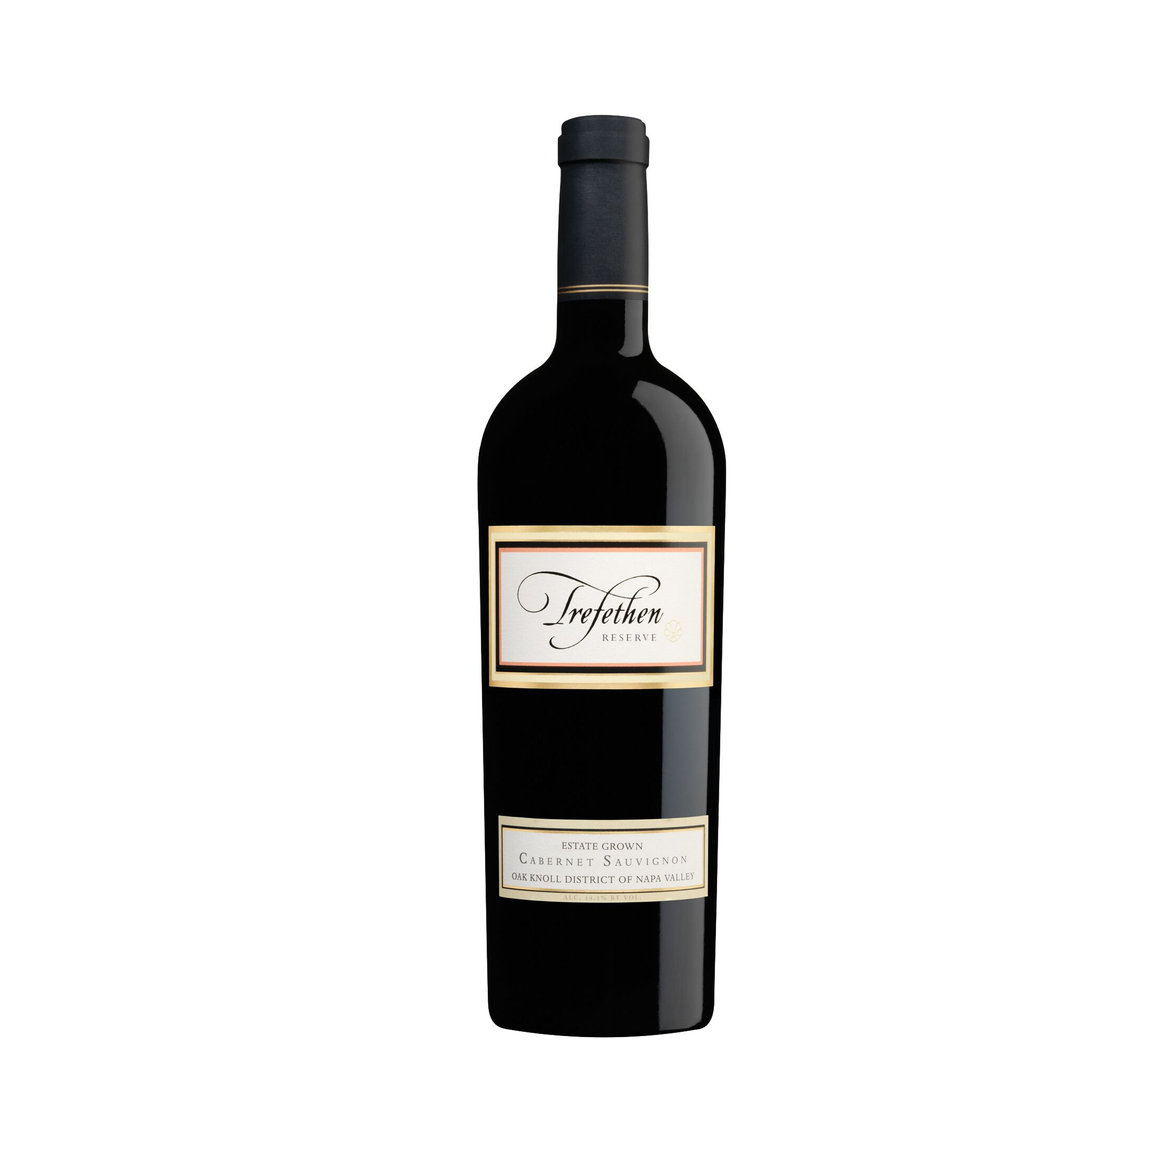 Reserve Cabernet Sauvignon, Trefethen Family Vineyards 2015 - Secret Cellar